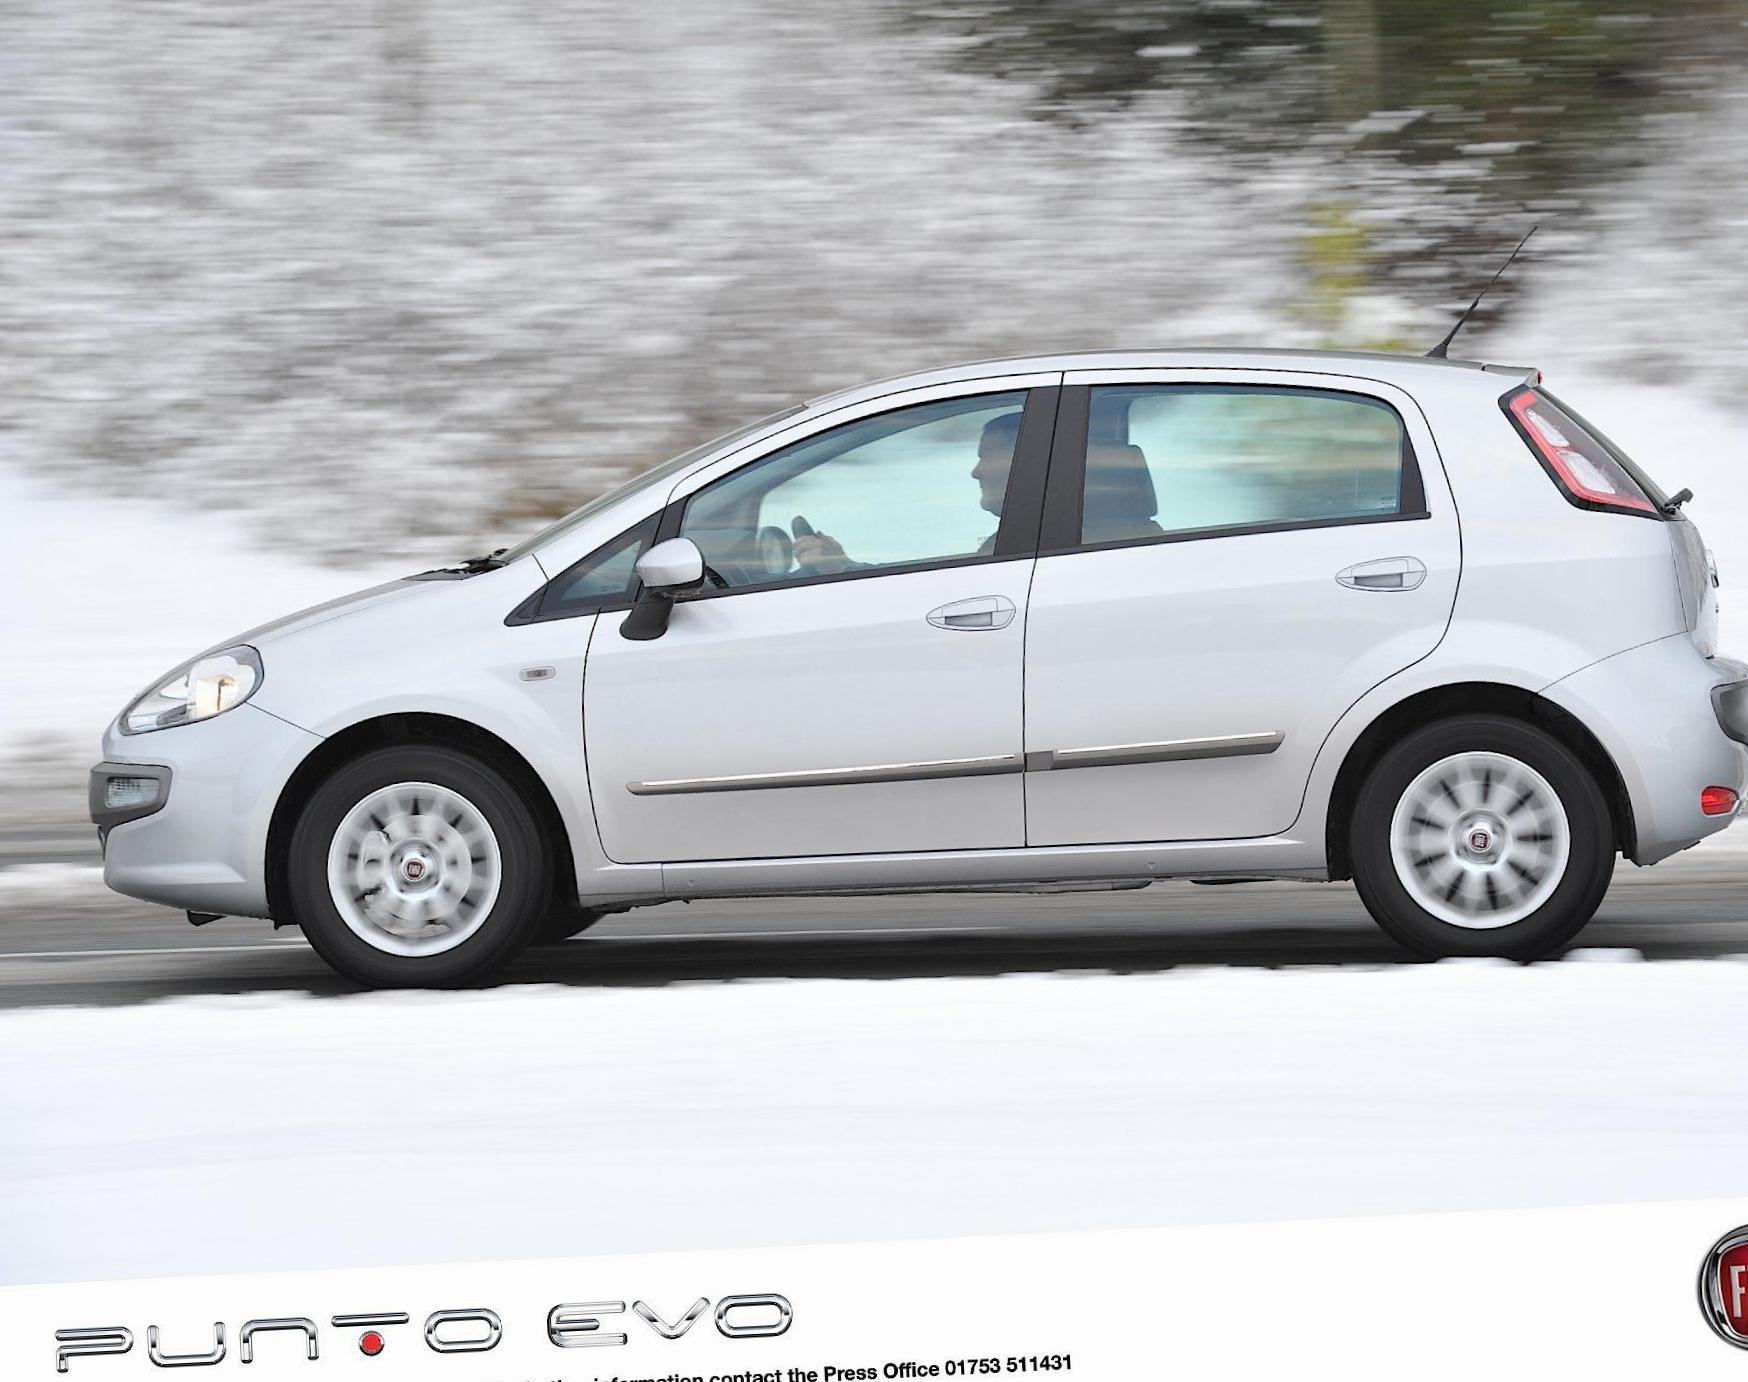 Fiat Punto Evo 5 doors Specifications sedan